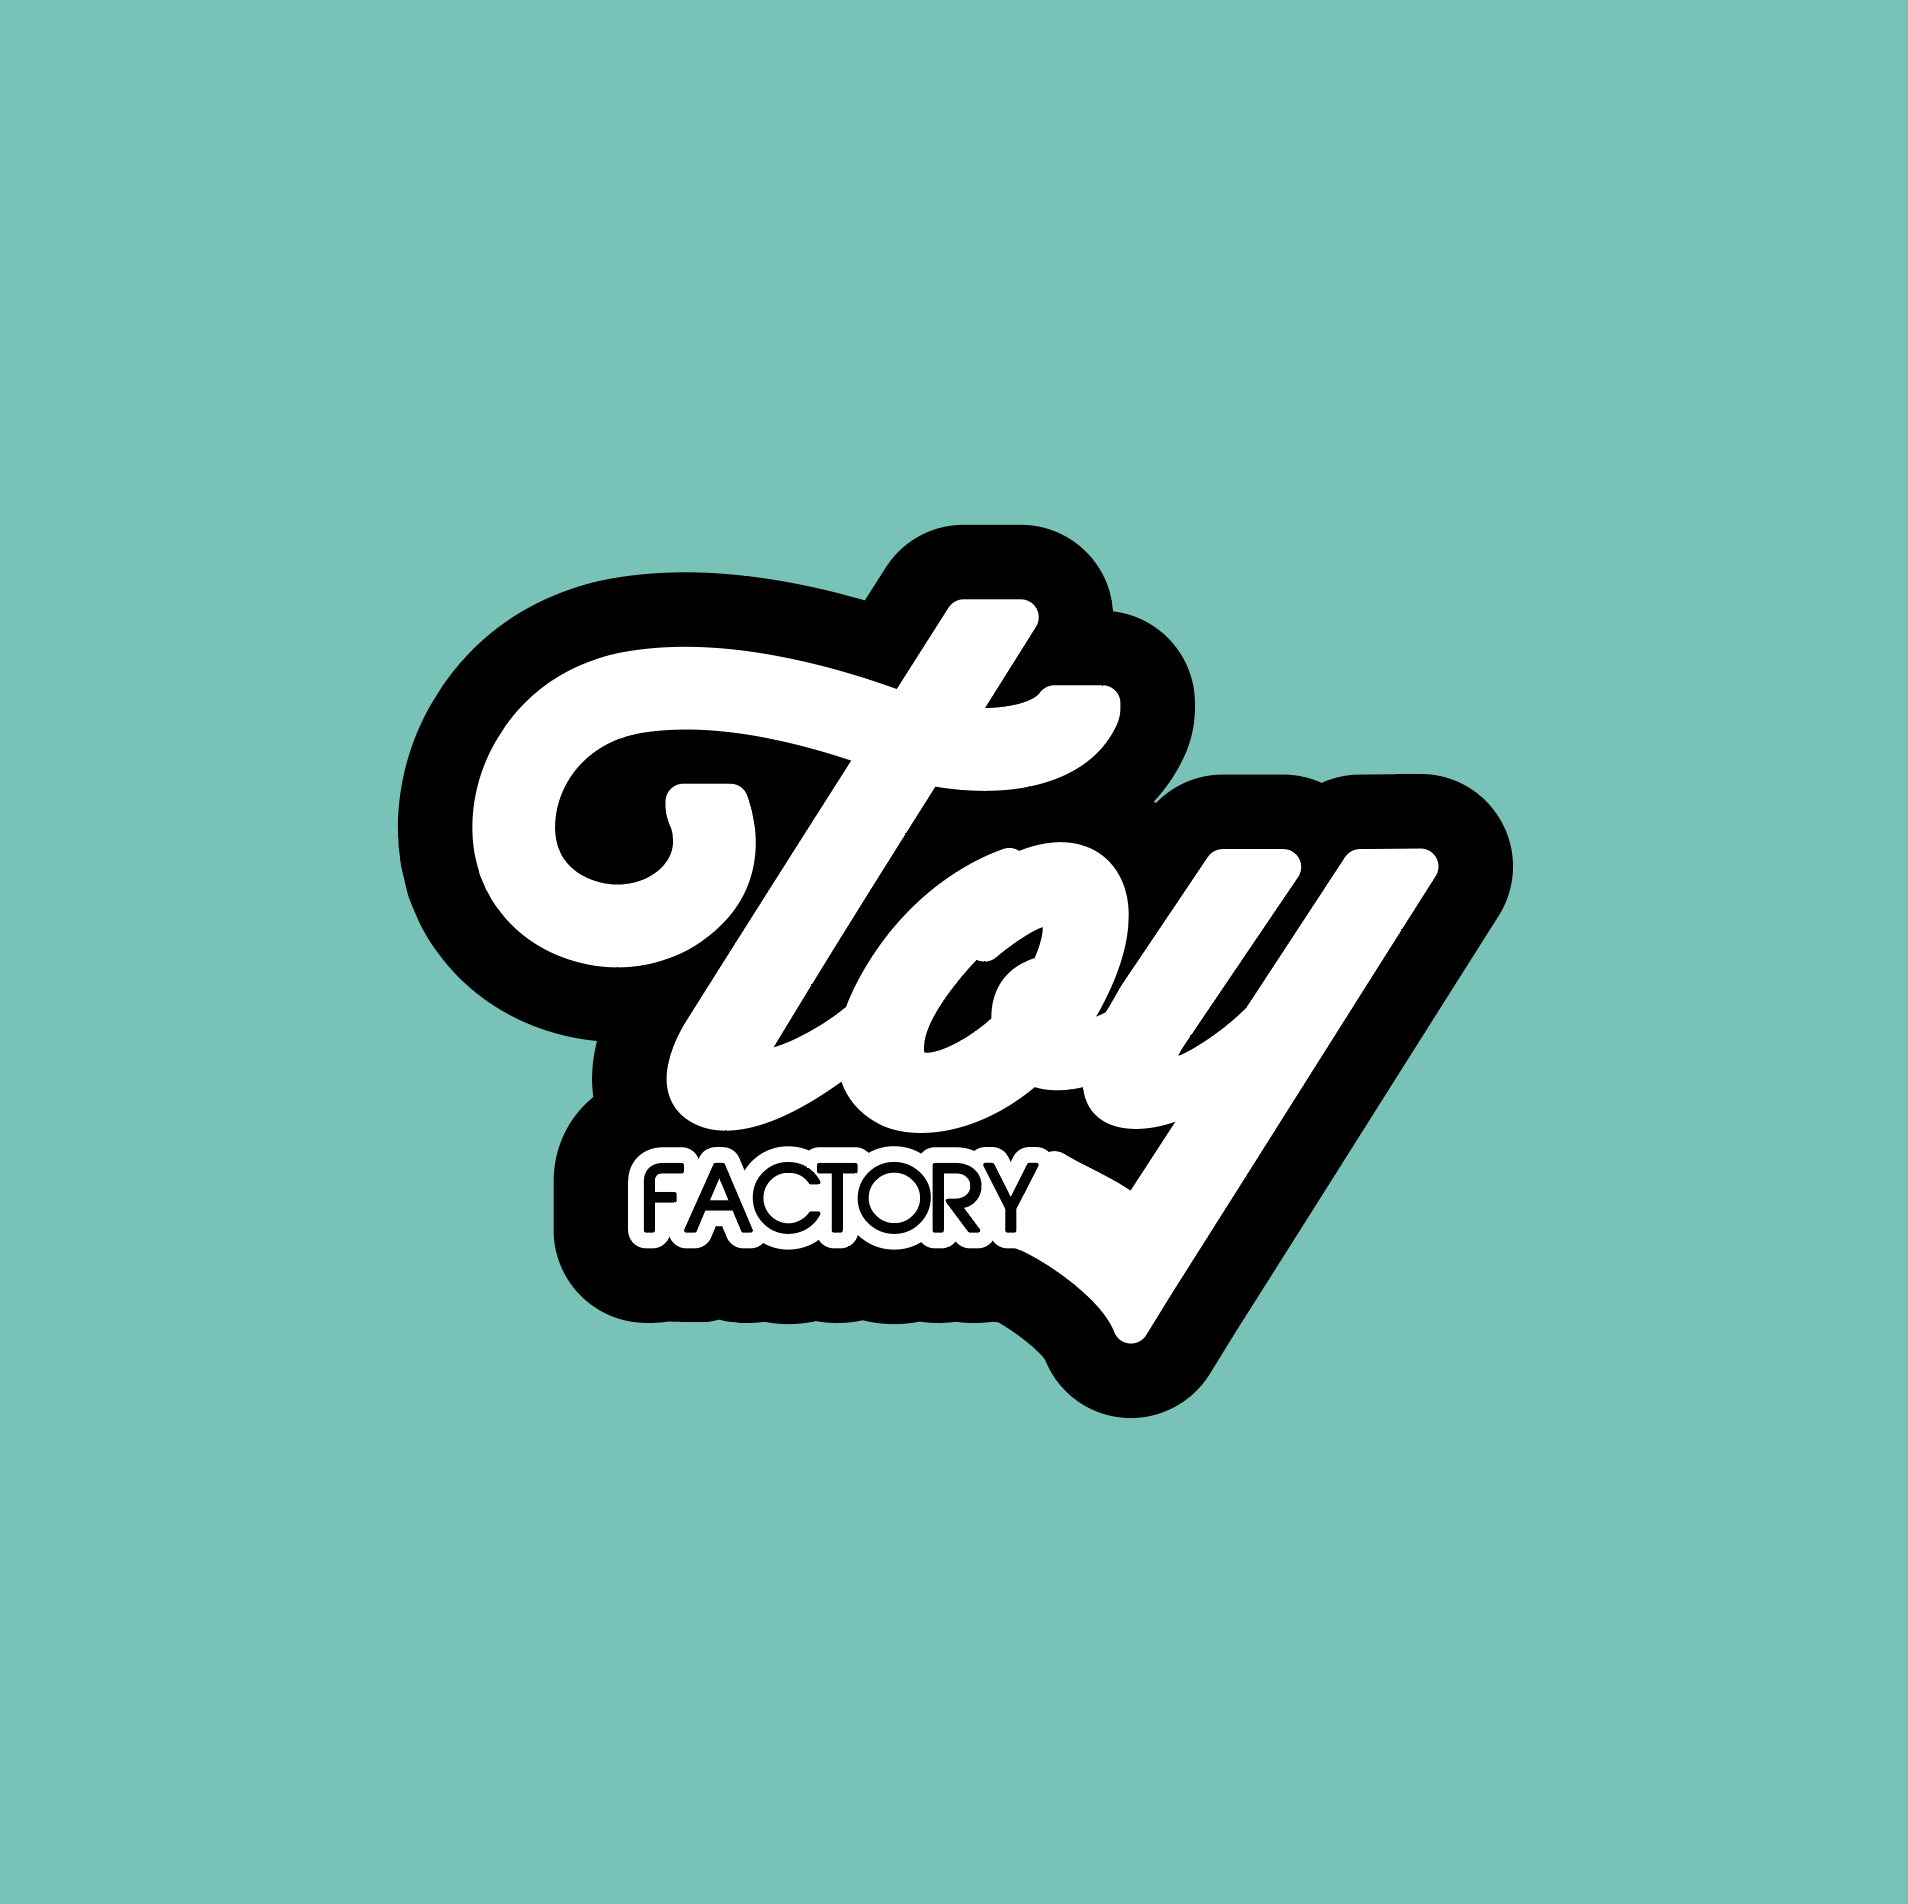 candy brophy creative - Toy Factory Ice Cream2.png